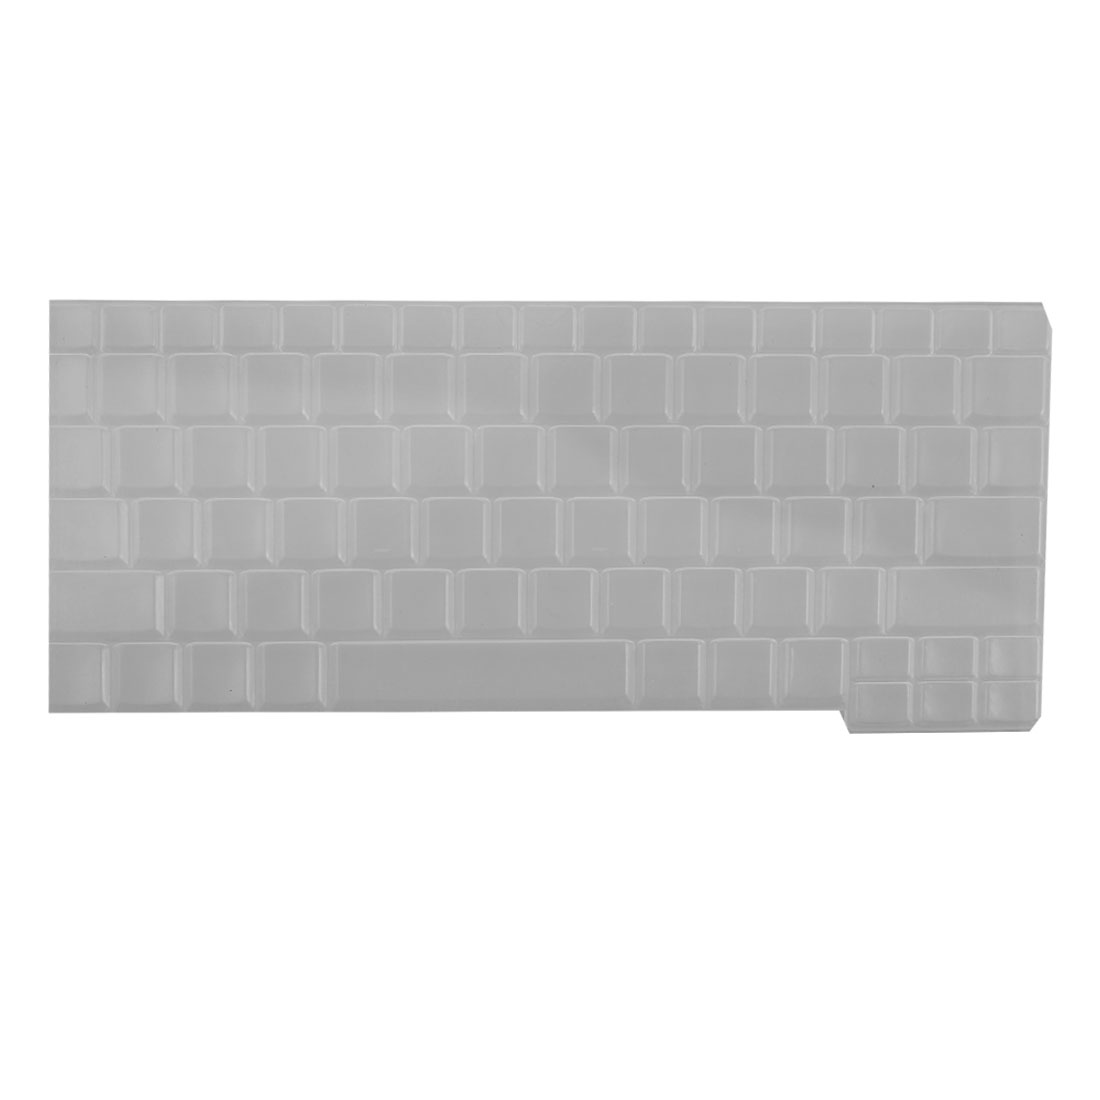 Clear White Silicone Keyboard Protective Cover Film for Lenovo S10-2